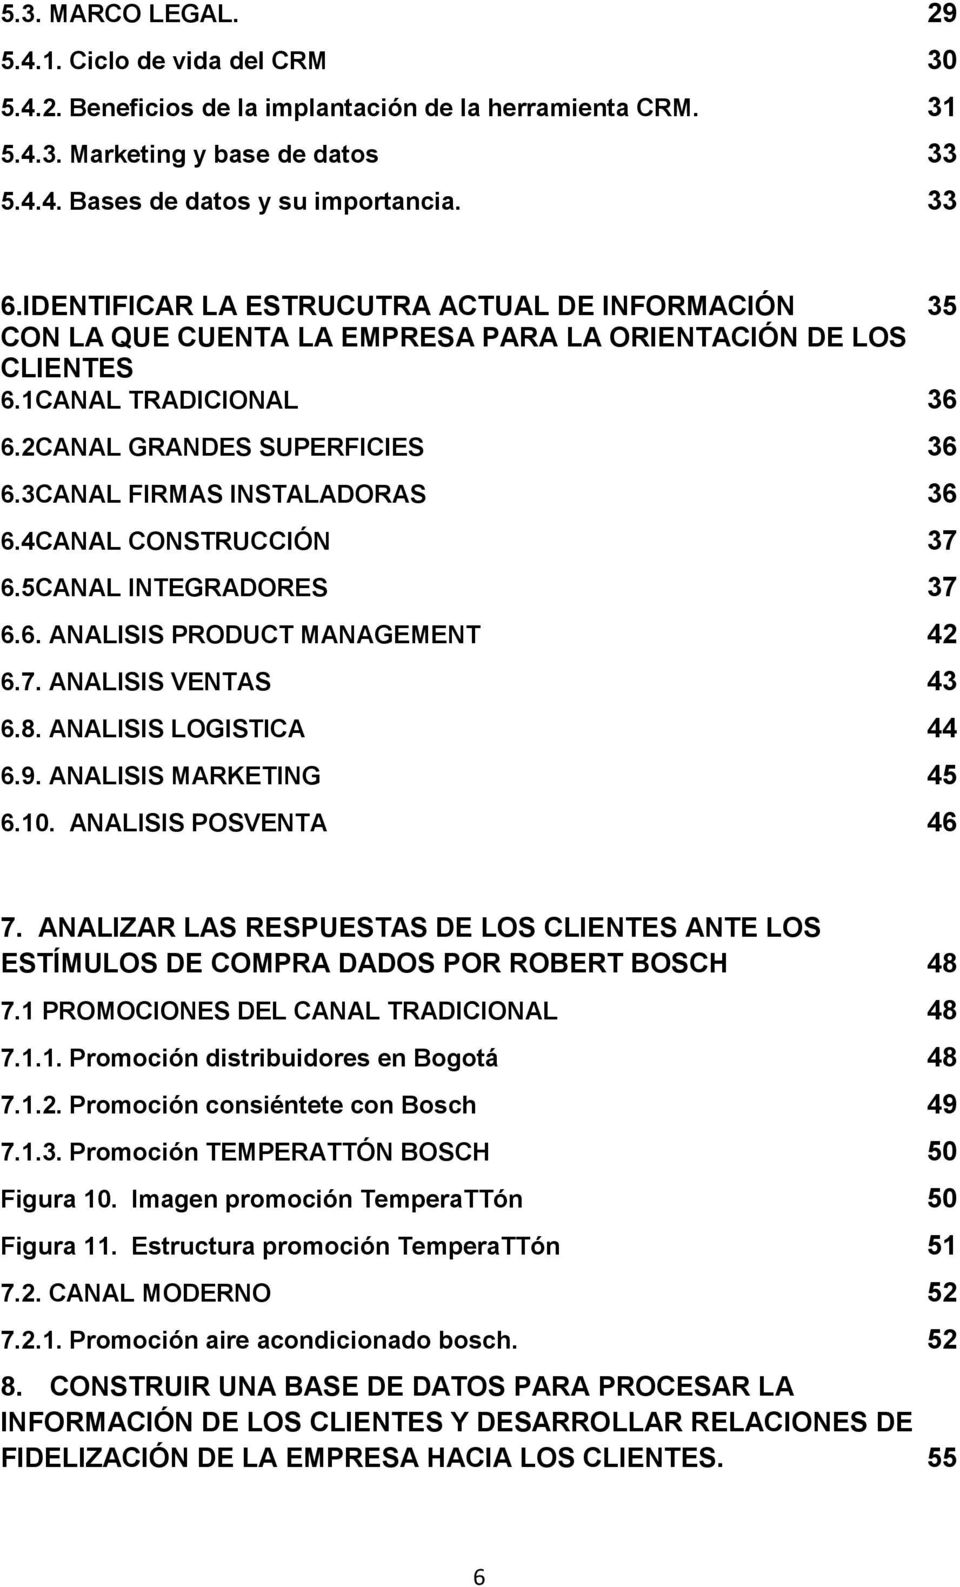 .. 36 6.4CANAL CONSTRUCCIÓN... 37 6.5CANAL INTEGRADORES... 37 6.6. ANALISIS PRODUCT MANAGEMENT... 42 6.7. ANALISIS VENTAS... 43 6.8. ANALISIS LOGISTICA... 44 6.9. ANALISIS MARKETING... 45 6.10.